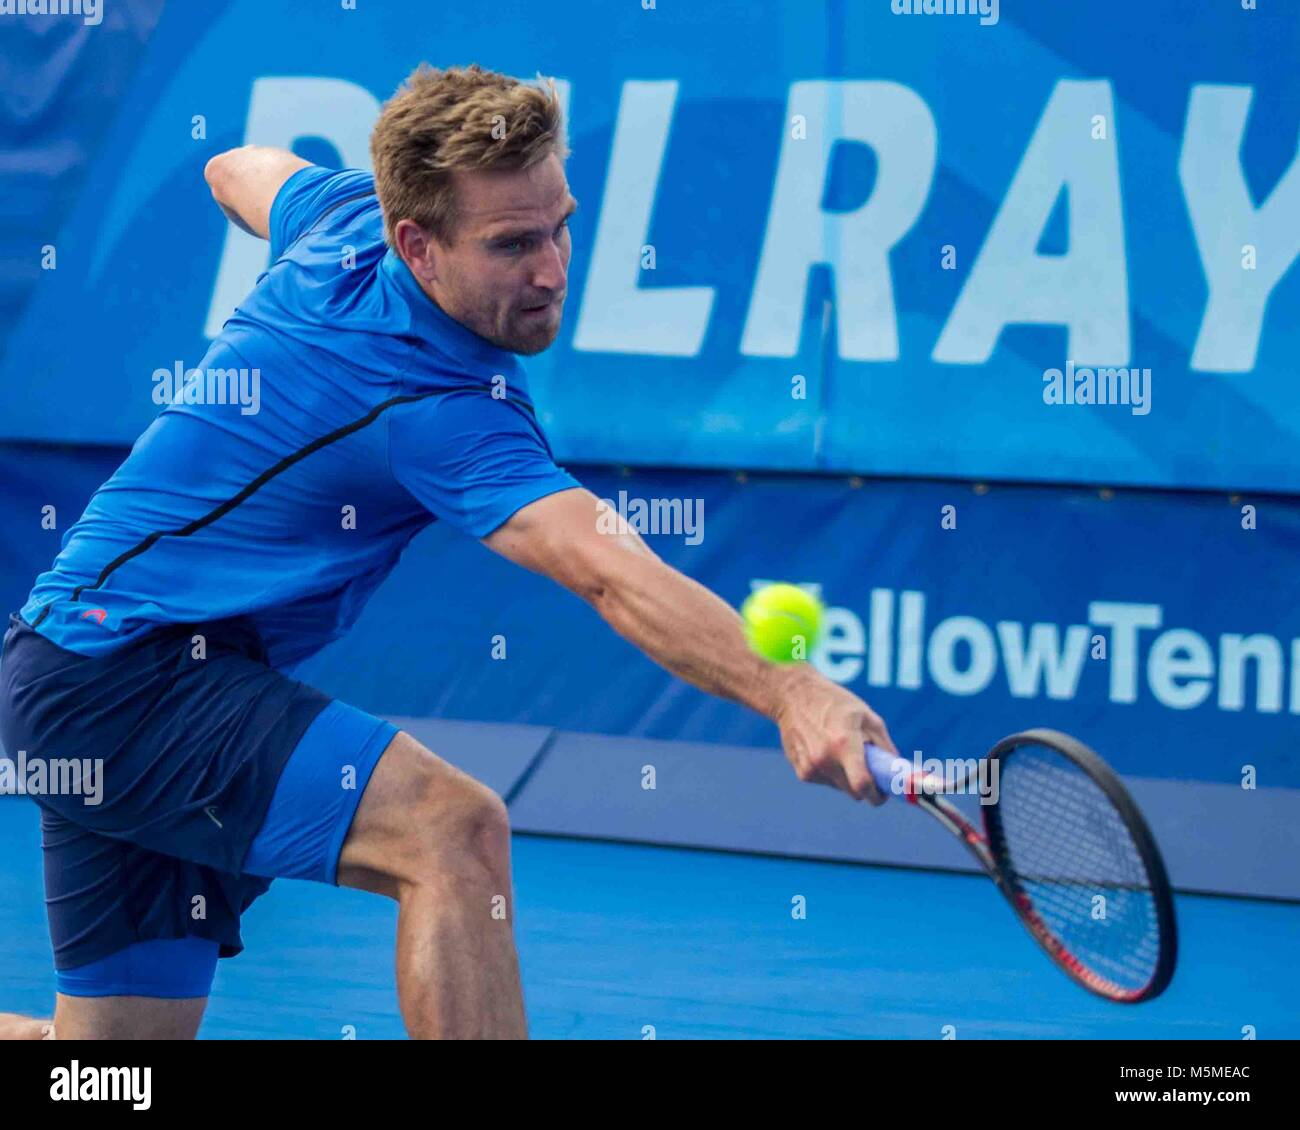 Delray Beach, FL, USA. 24th Feb, 2018. PETER GOJOWCZYK (Ger) in action on court in the Delray Beach Open singles - Stock Image